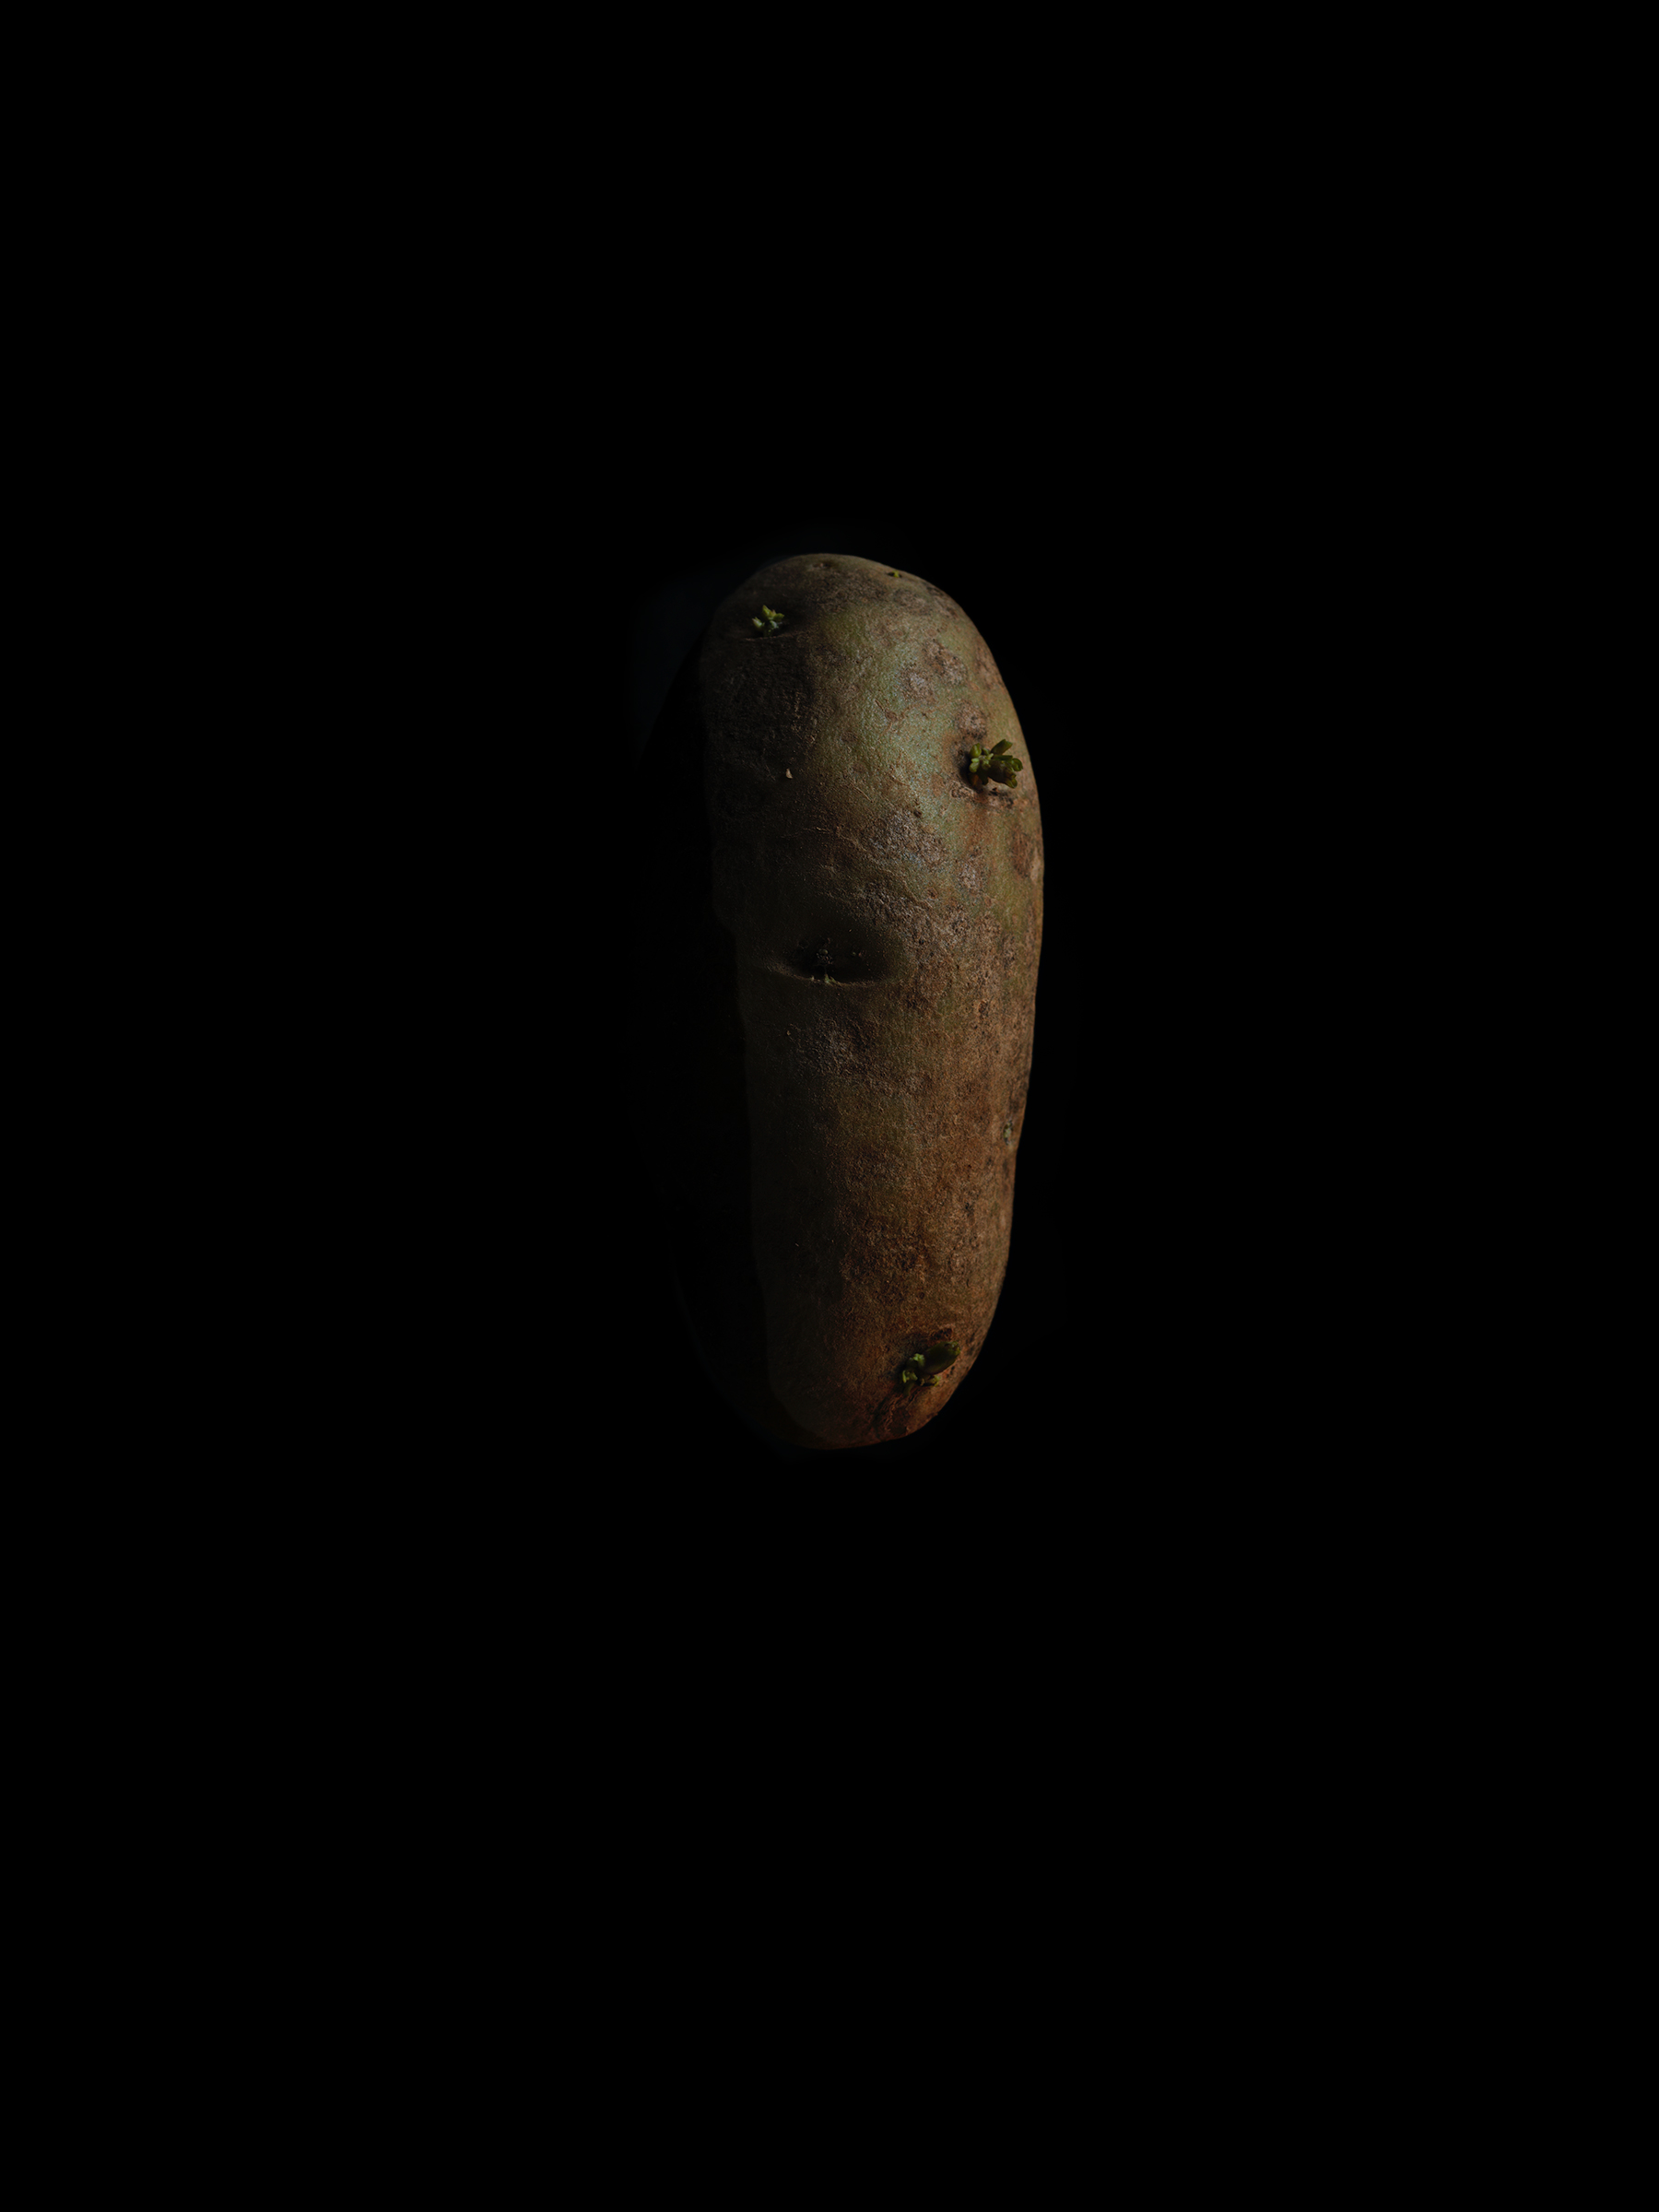 Potato-Best-fine-art-Gallery-Photographer-New-Mexico-NM-Santa-Fe-Taos-California-Bay-Area-LA-Santa-Monica-Moma-Met-NYC-NY-Danziger-Boghosian-Gallery-Chelseacopy